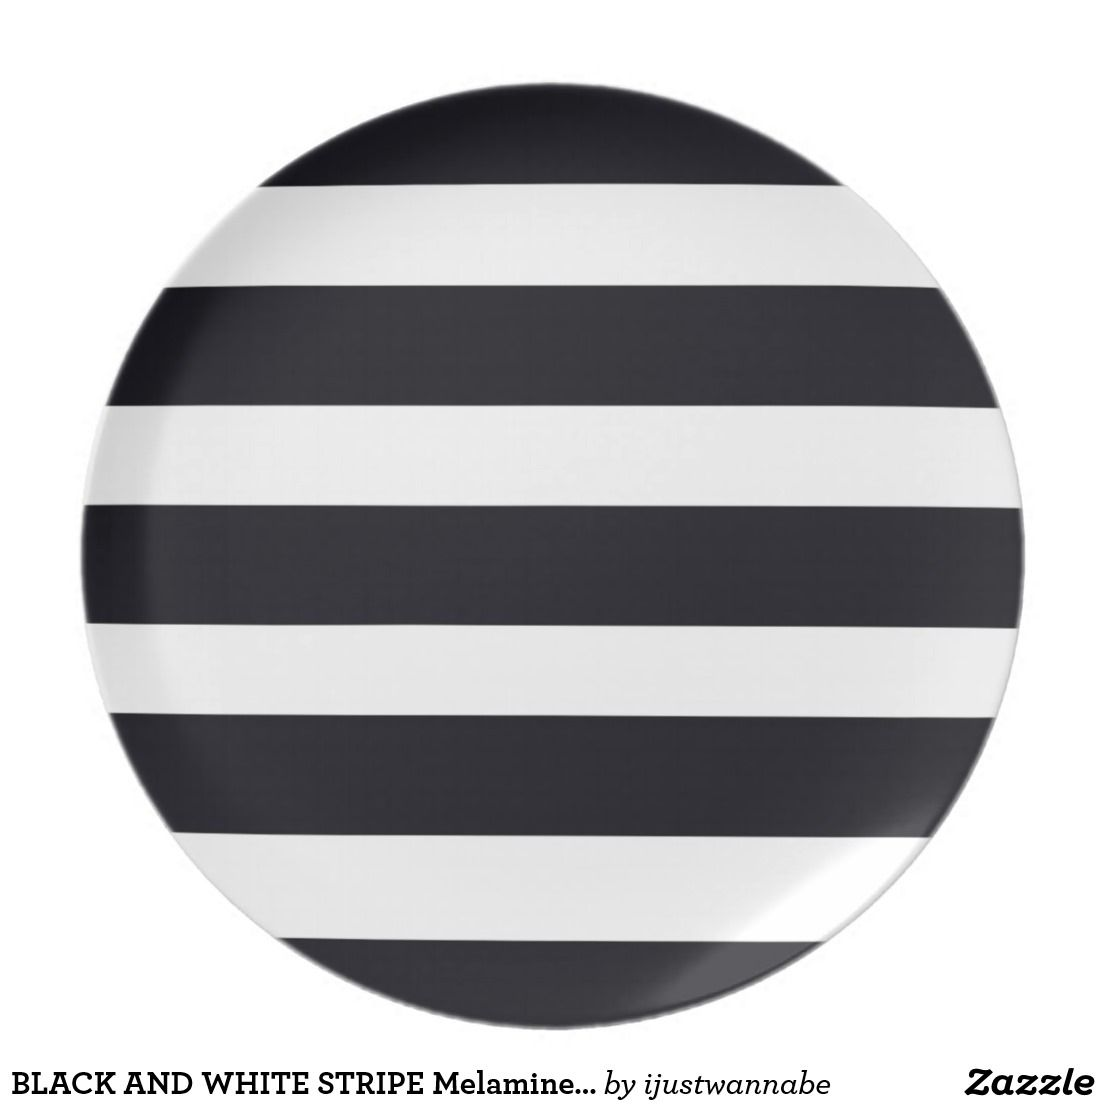 BLACK AND WHITE STRIPE Melamine Dinner Plates. Beautiful non-breakable Melamine Dinner Plates with Classic Black and White Stripes.  sc 1 st  Pinterest & BLACK AND WHITE STRIPE Melamine Dinner Plates. Beautiful non ...